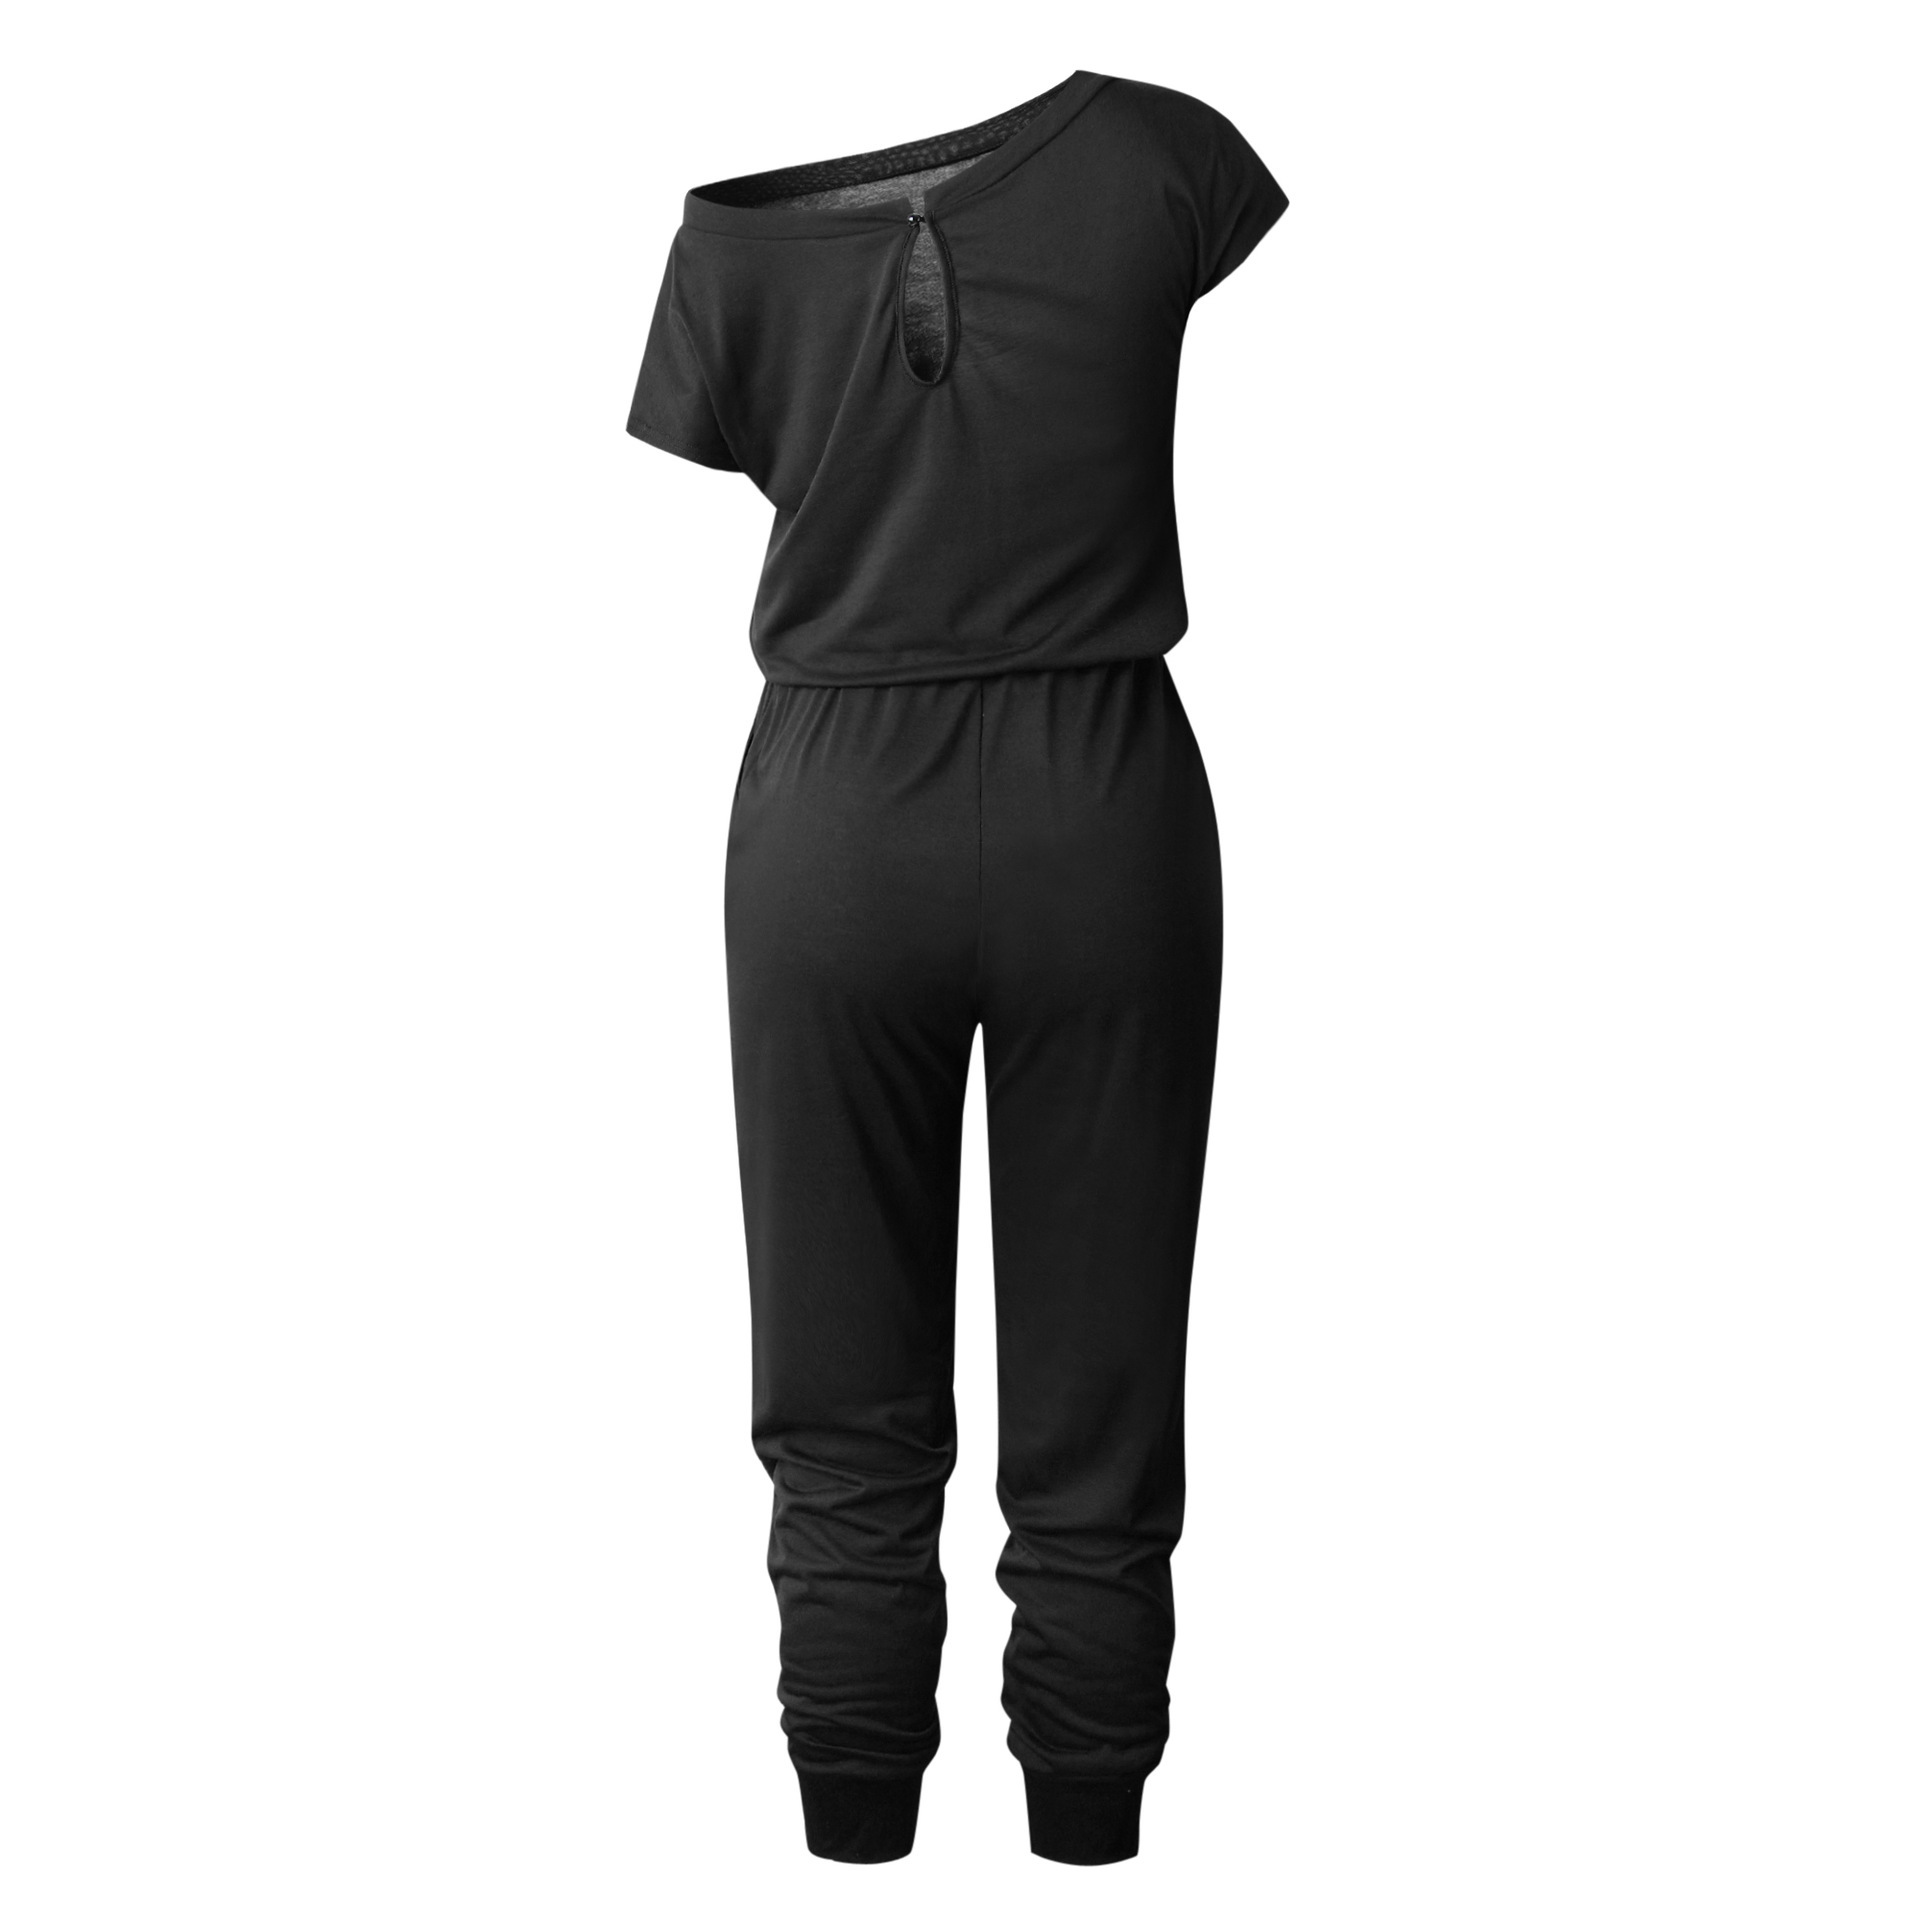 Solid Casual Sexy Off Shoulder Short Sleeve Women Suit 2019 New Arrival Women Summer Fashion Slim Elegant Long Rompers Female 8